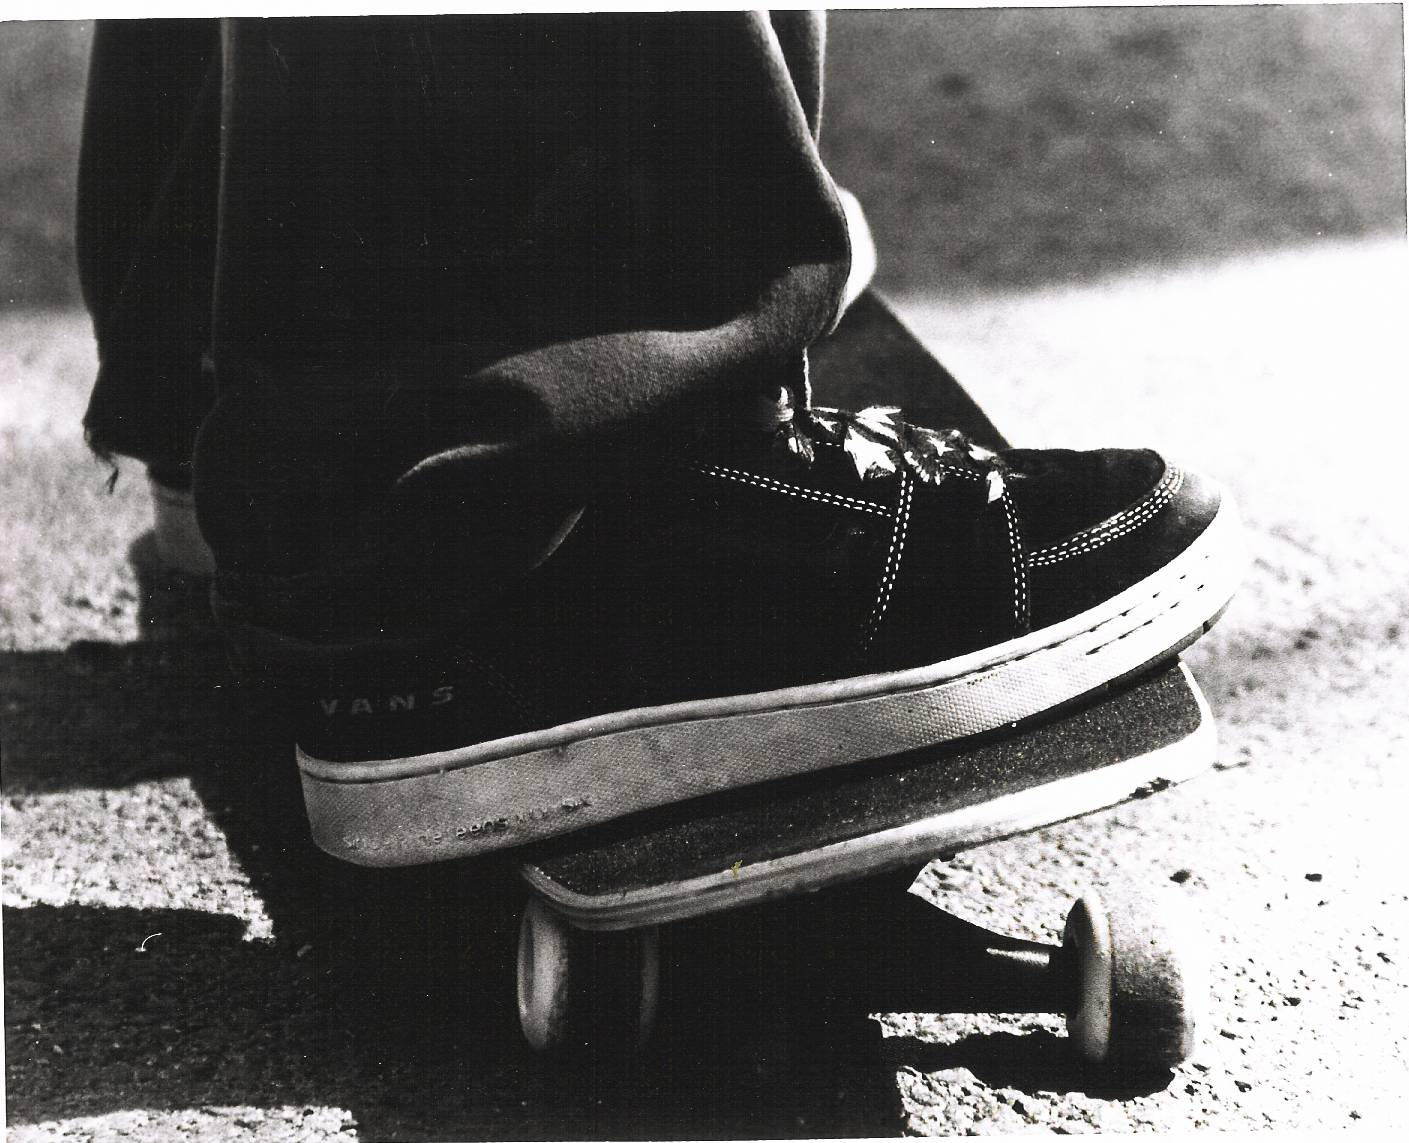 vans skate by slinkysk8 Vans Skateboarding Wallpaper